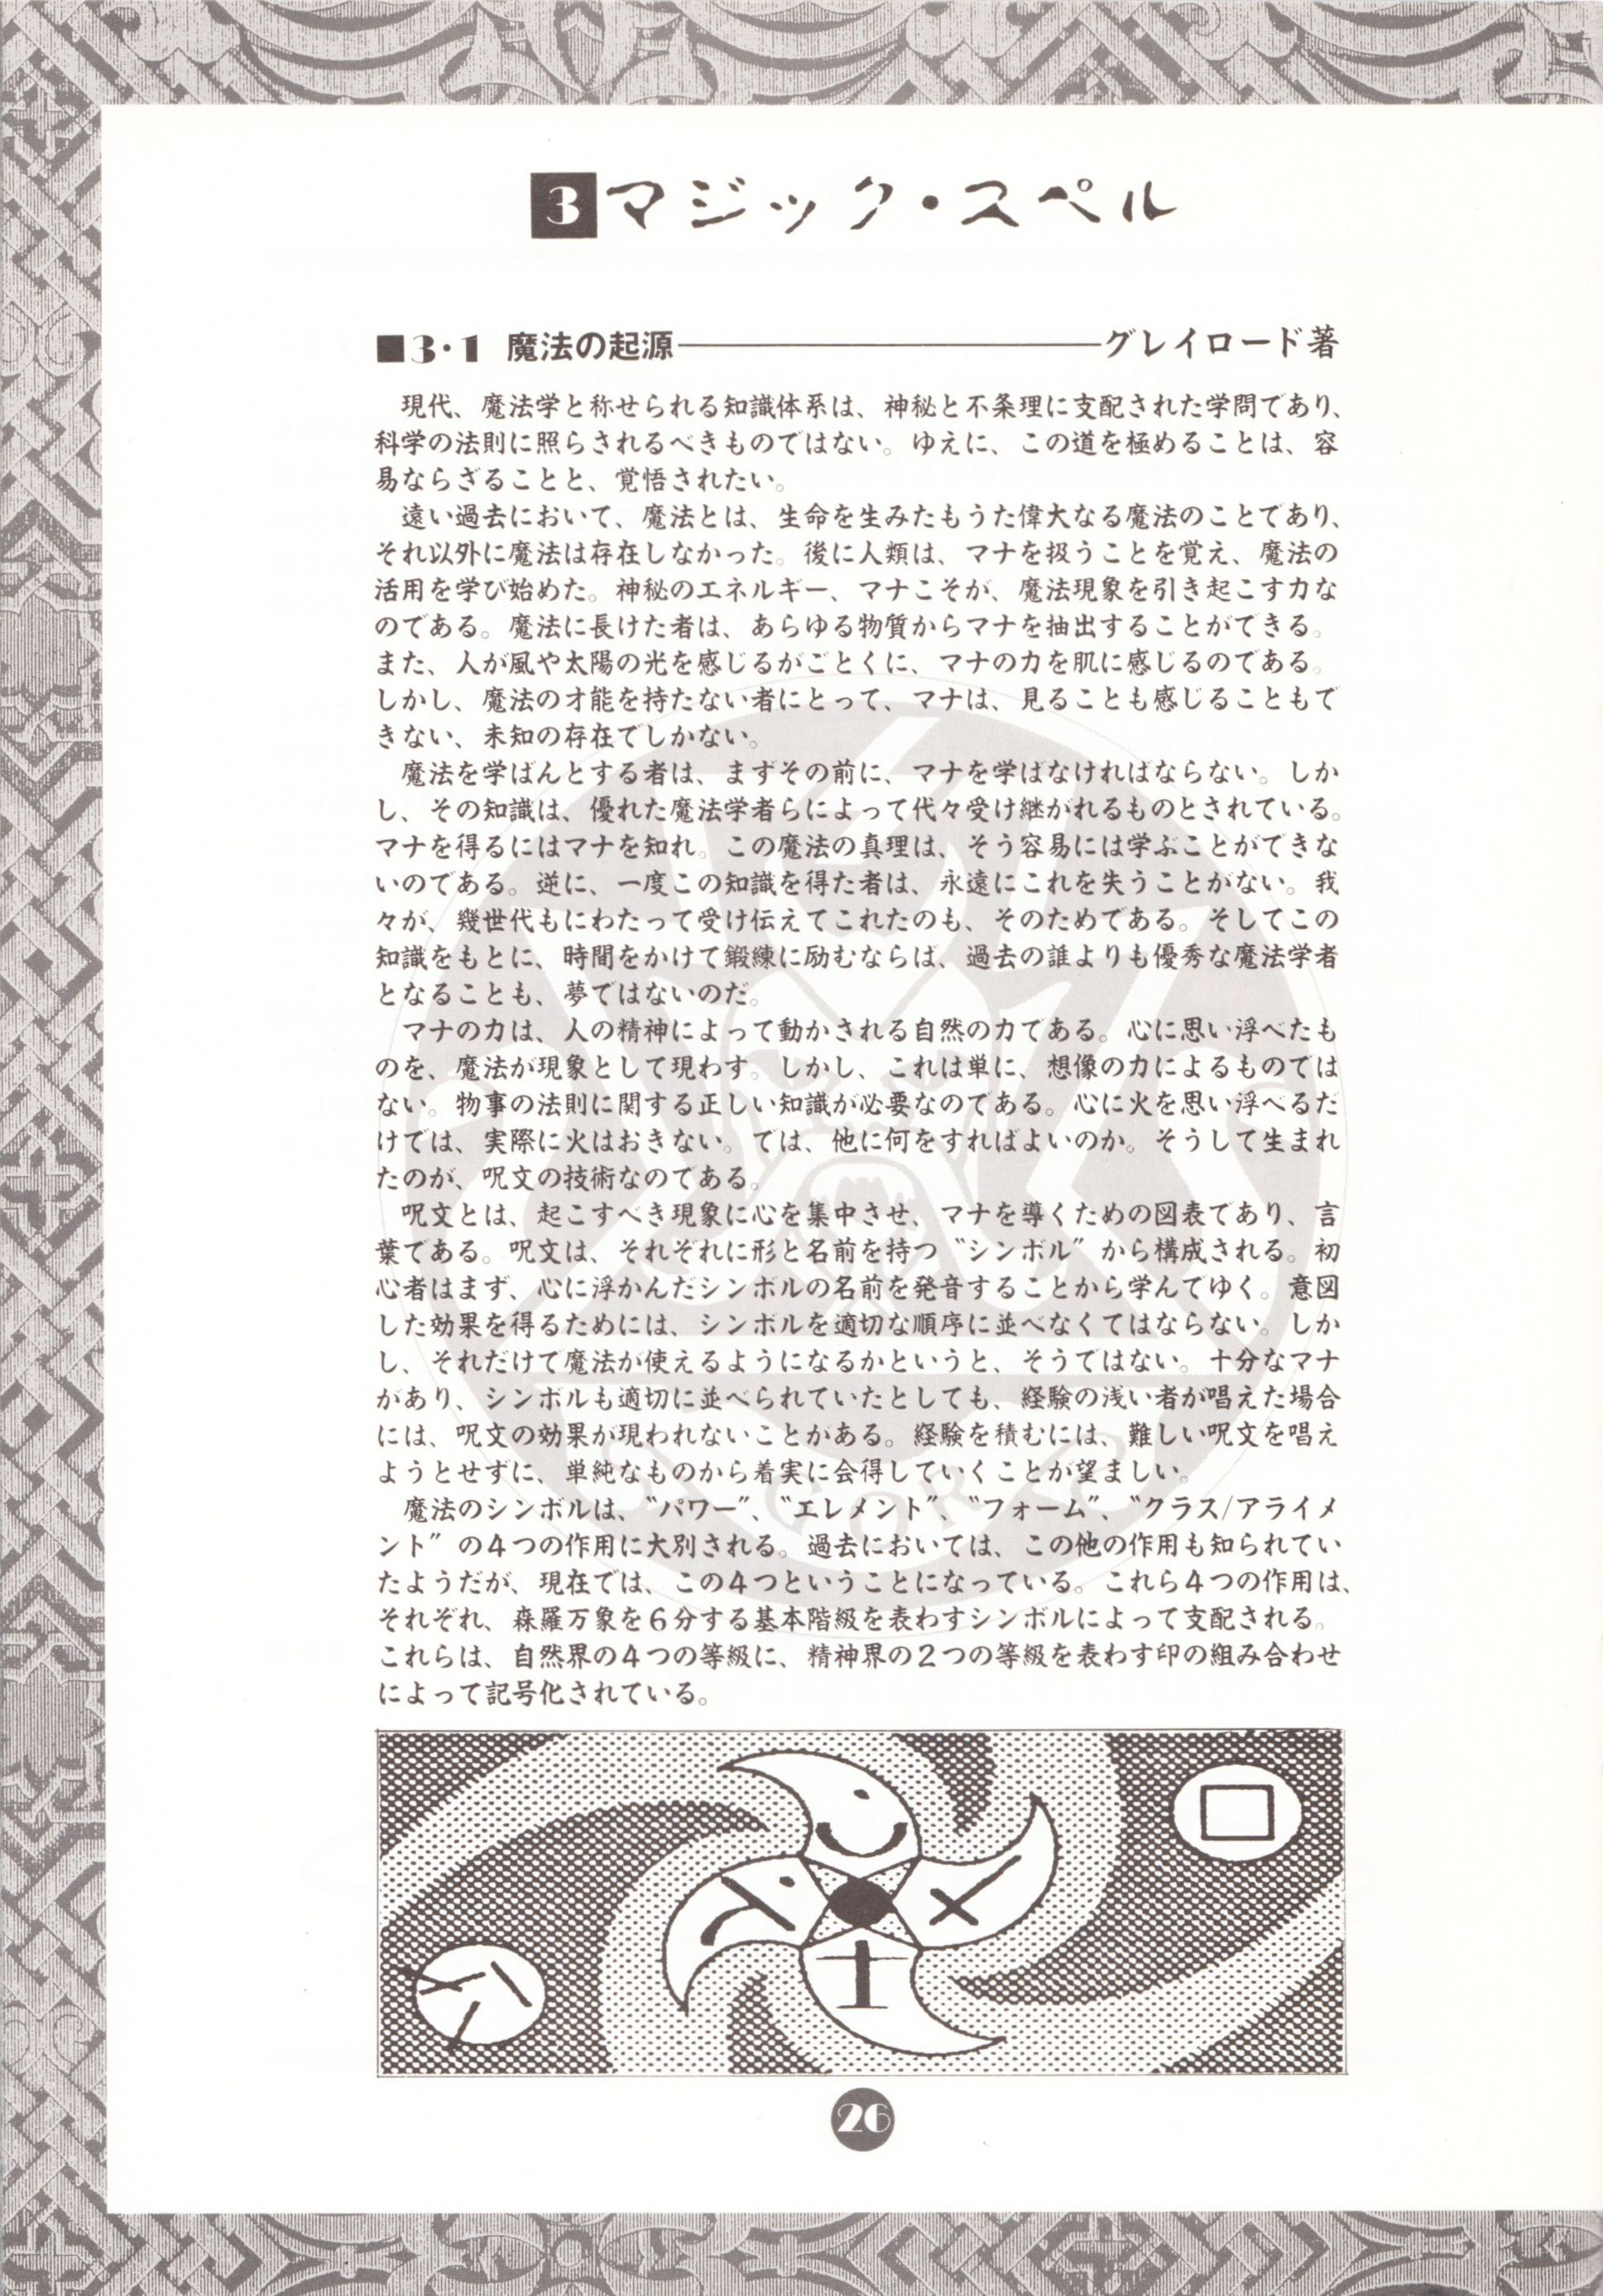 Game - Chaos Strikes Back - JP - FM Towns - The Guidance Of Adventure - Page 028 - Scan